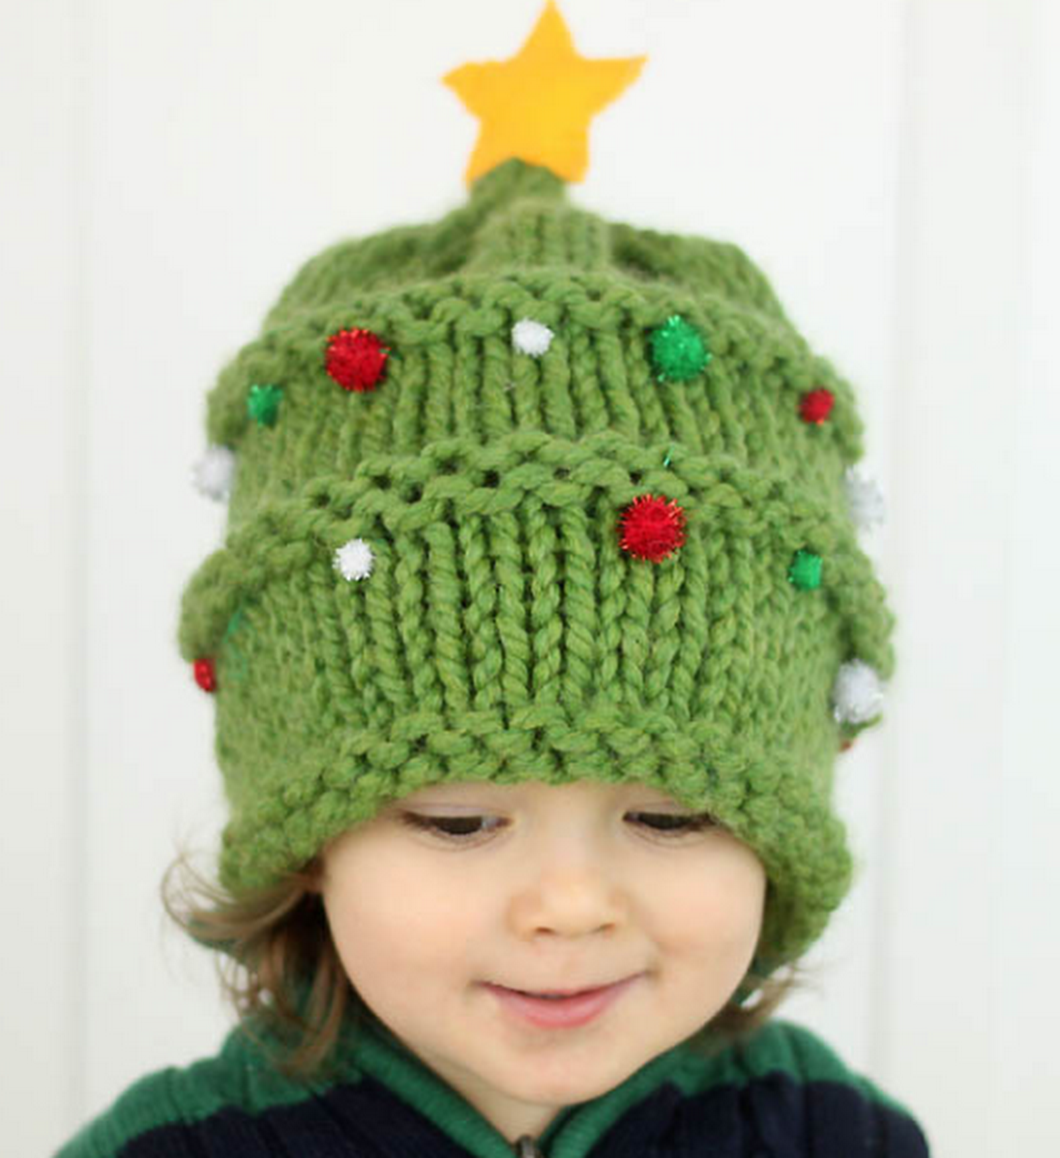 Pin by · Salome 2· isfj on · Christmas · | Pinterest | Baby knitting ...